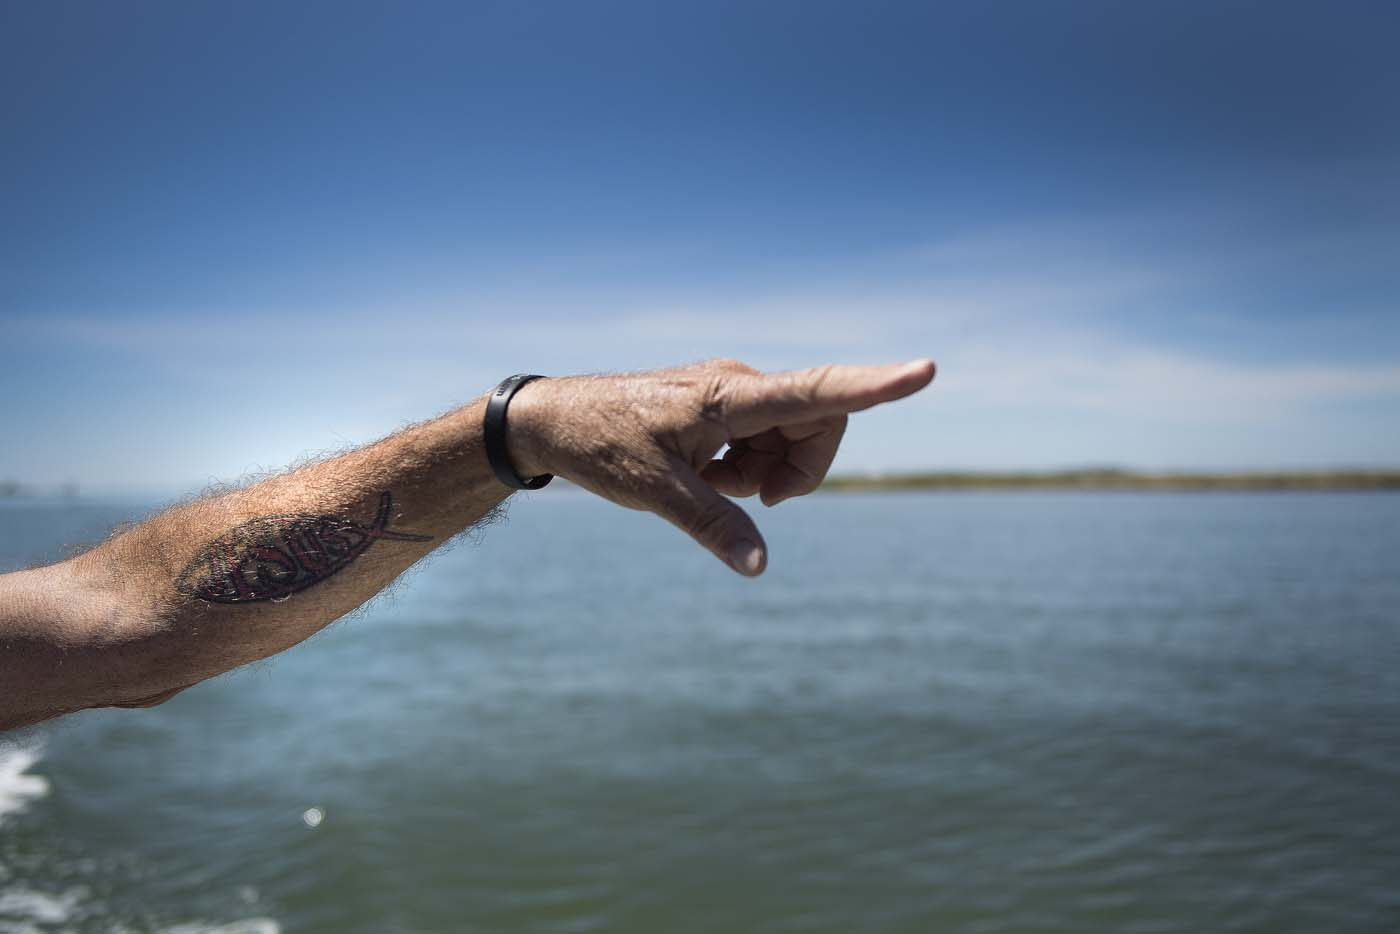 Mayor and waterman James Eskridge's tattoo of the Jesus fish adorns his arm as he points out areas that have been completely eroded away in Tangier, Virginia, May 16, 2017, where climate change and rising sea levels threaten the inhabitants of the slowly sinking island. Now measuring 1.2 square miles, Tangier Island has lost two-thirds of its landmass since 1850. If nothing is done to stop the erosion, it may disappear completely in the next 40 years. / AFP PHOTO / JIM WATSON